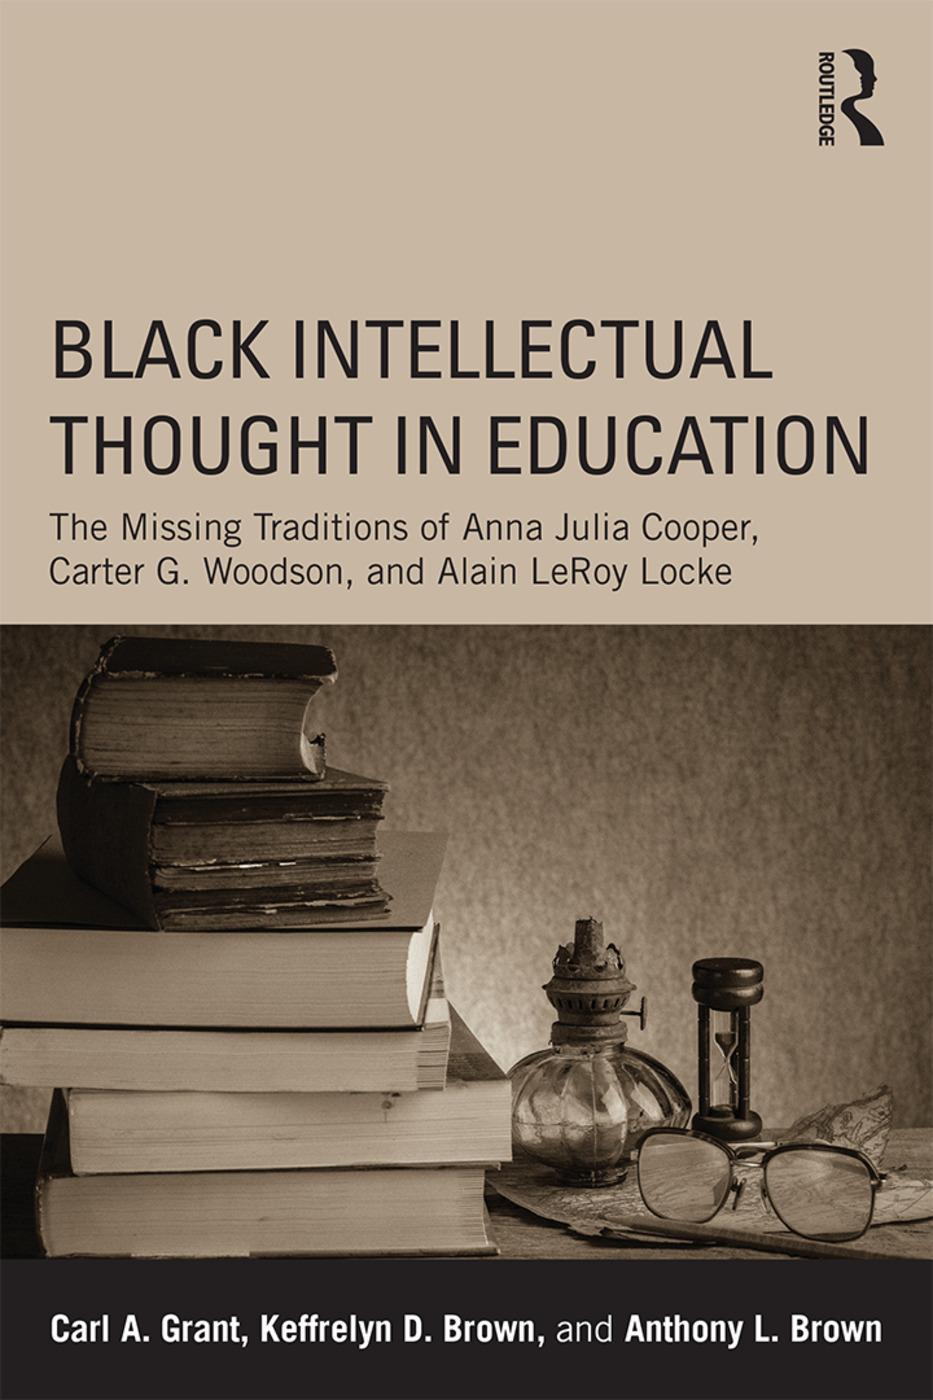 Black Intellectual Thought in Education: The Missing Traditions of Anna Julia Cooper, Carter G. Woodson, and Alain LeRoy Locke, 1st Edition (Paperback) book cover